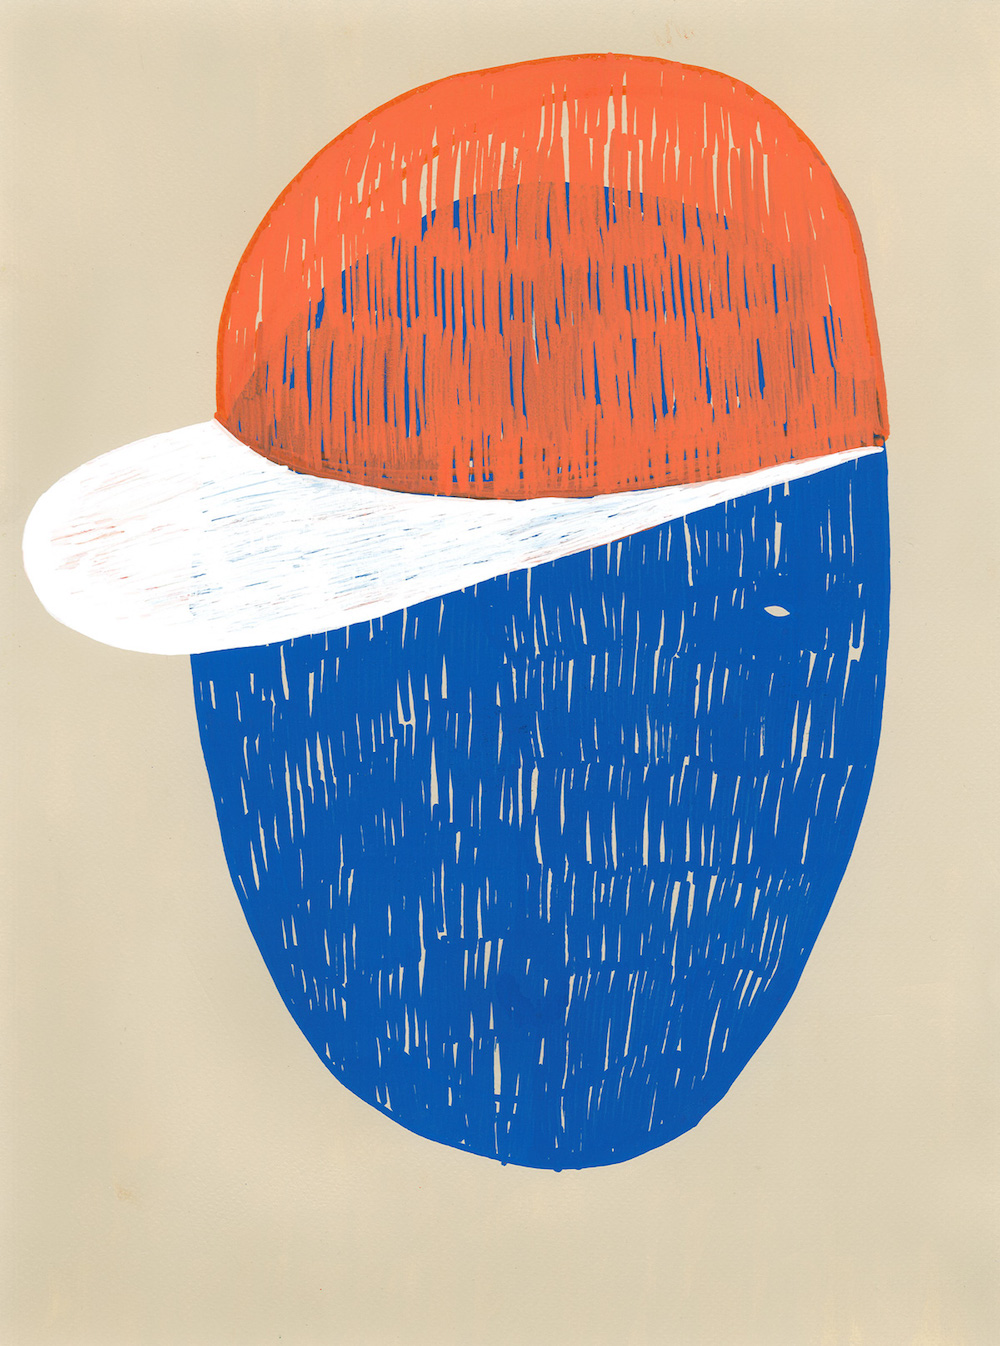 illustration, illustrations, illustrator, illustrators, cap, caps, hat, hats, stroke, strokes, texture, beige, boy, boys, girl, girls